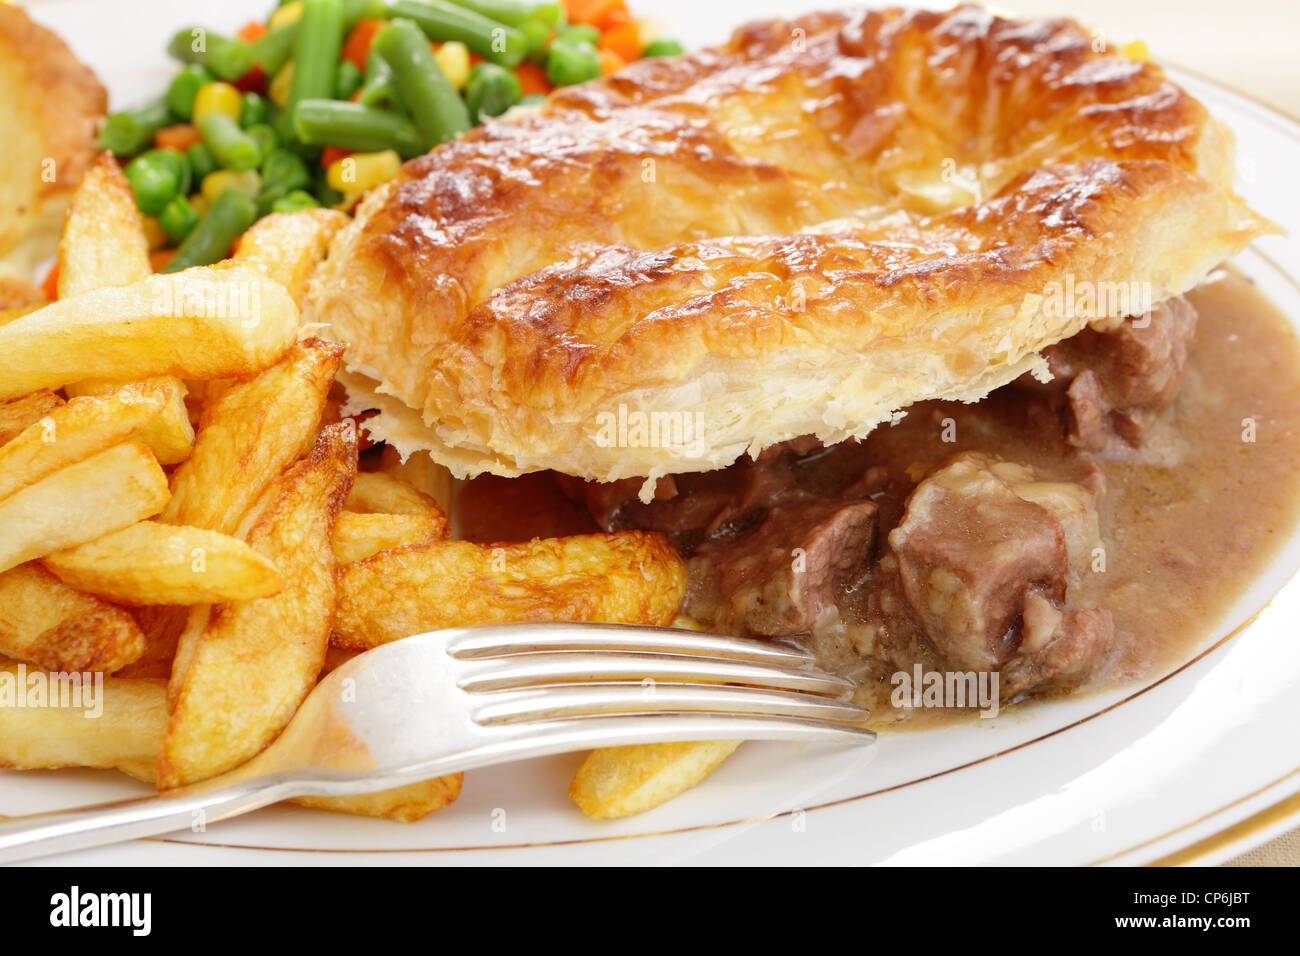 A meal of a homemade steak and kidney pie with french fried potato chips and mixed vegetables - Stock Image